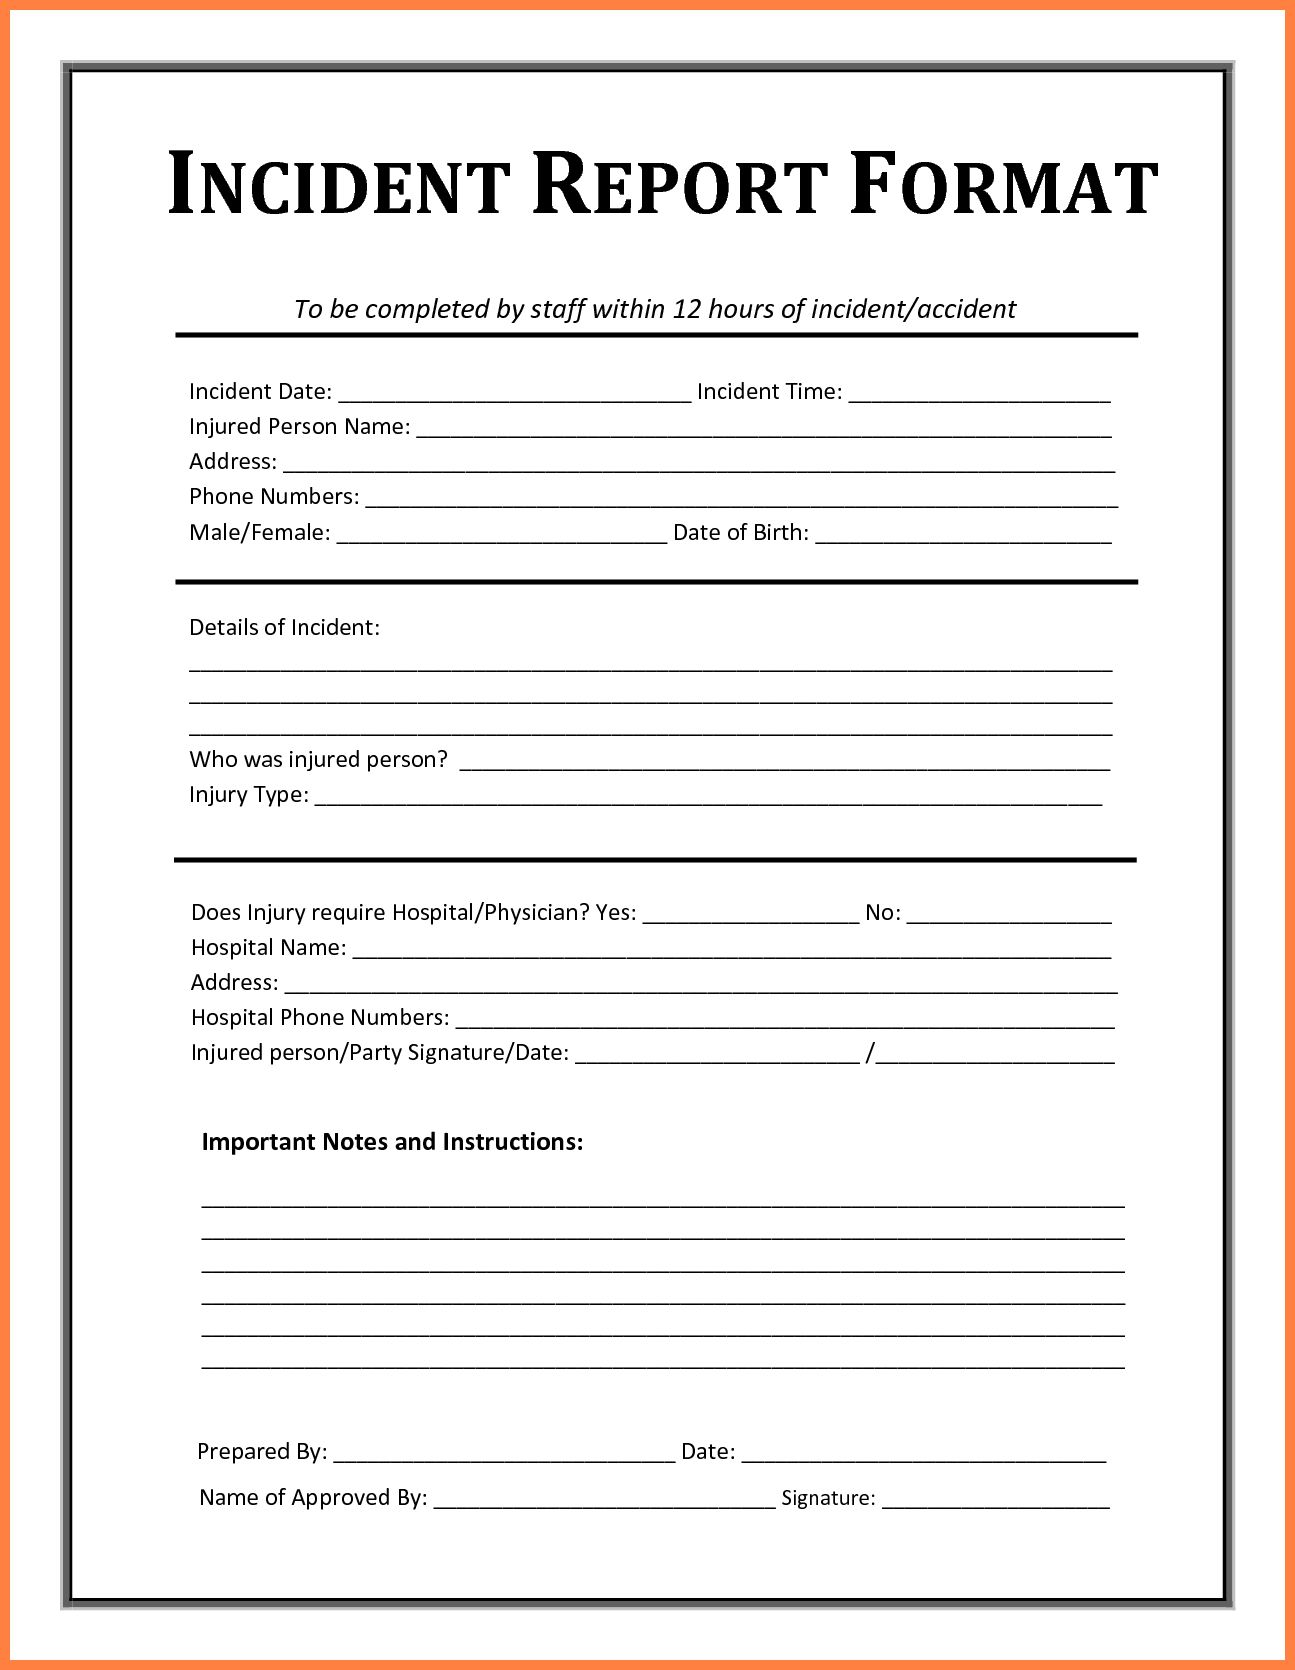 Contoh Incident Report Falep.midnightpig.co intended for